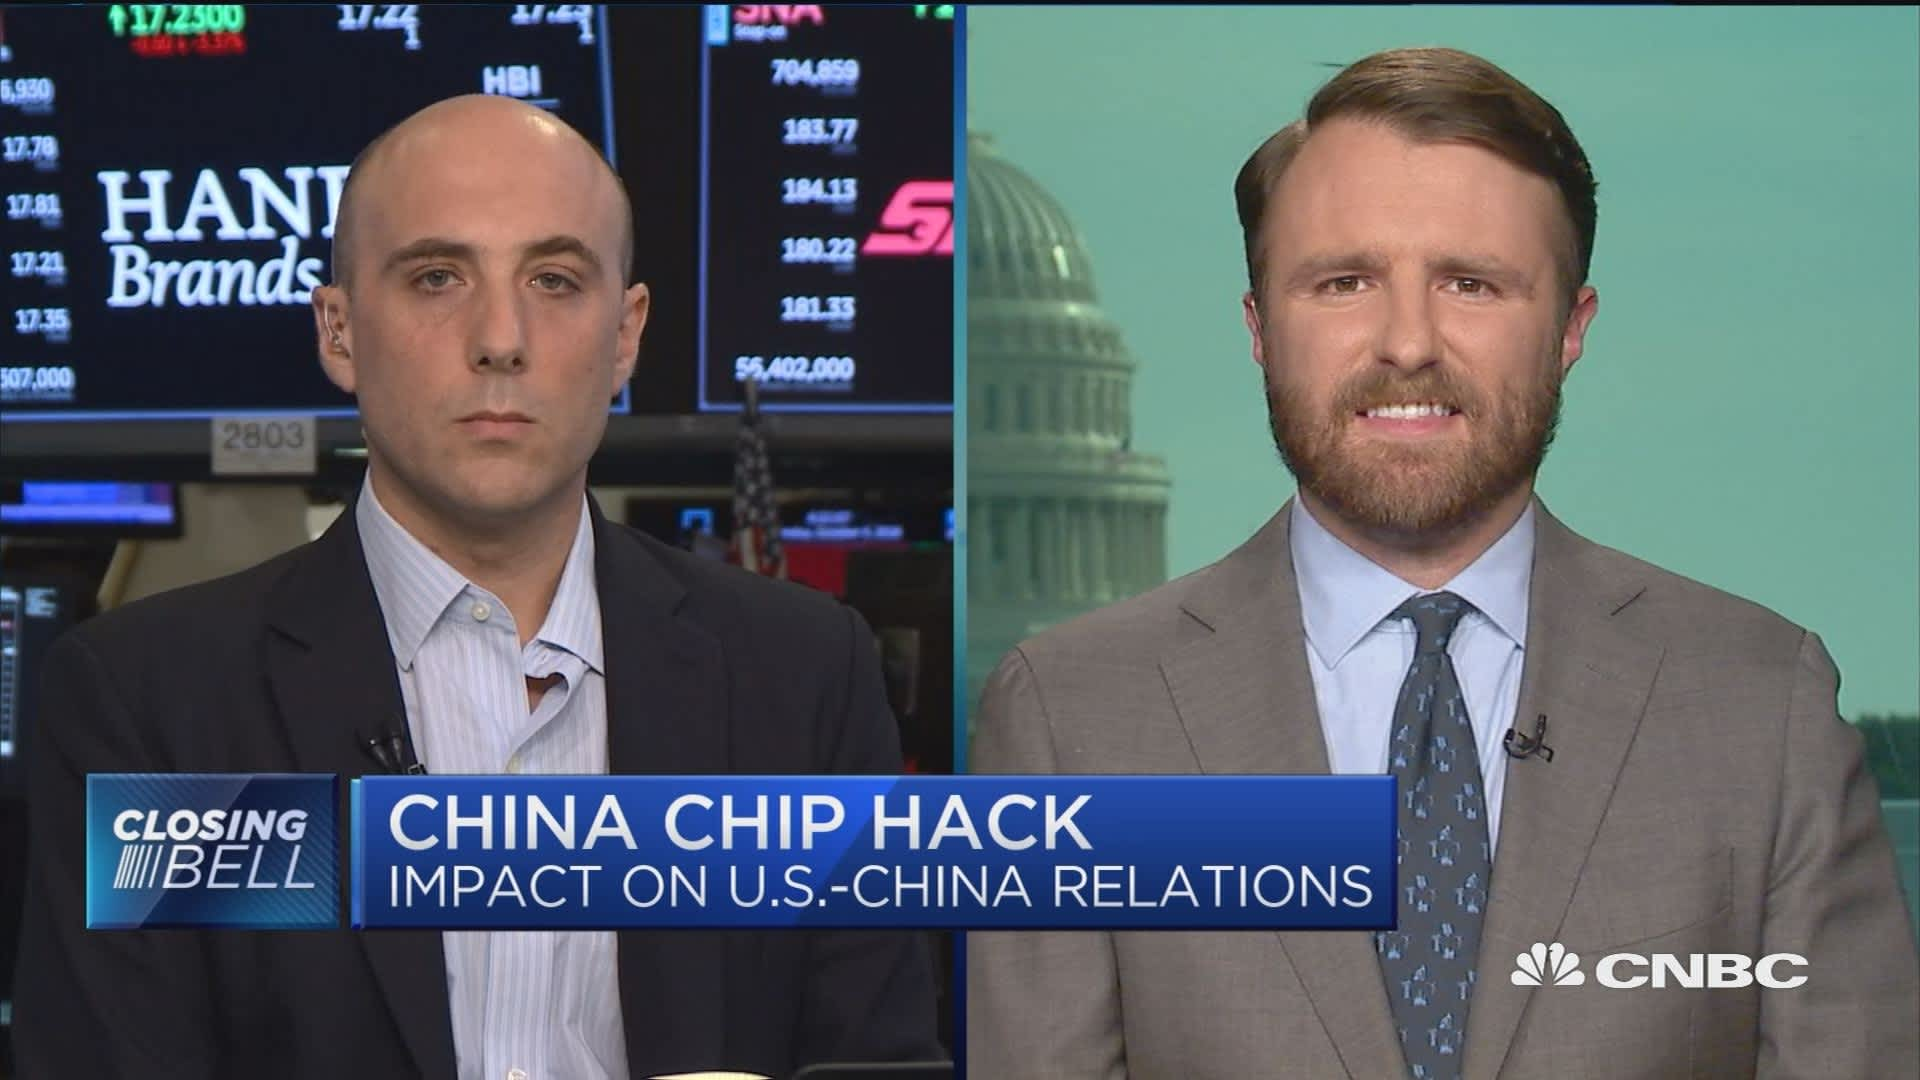 China chip hack: Impact on US-China relations